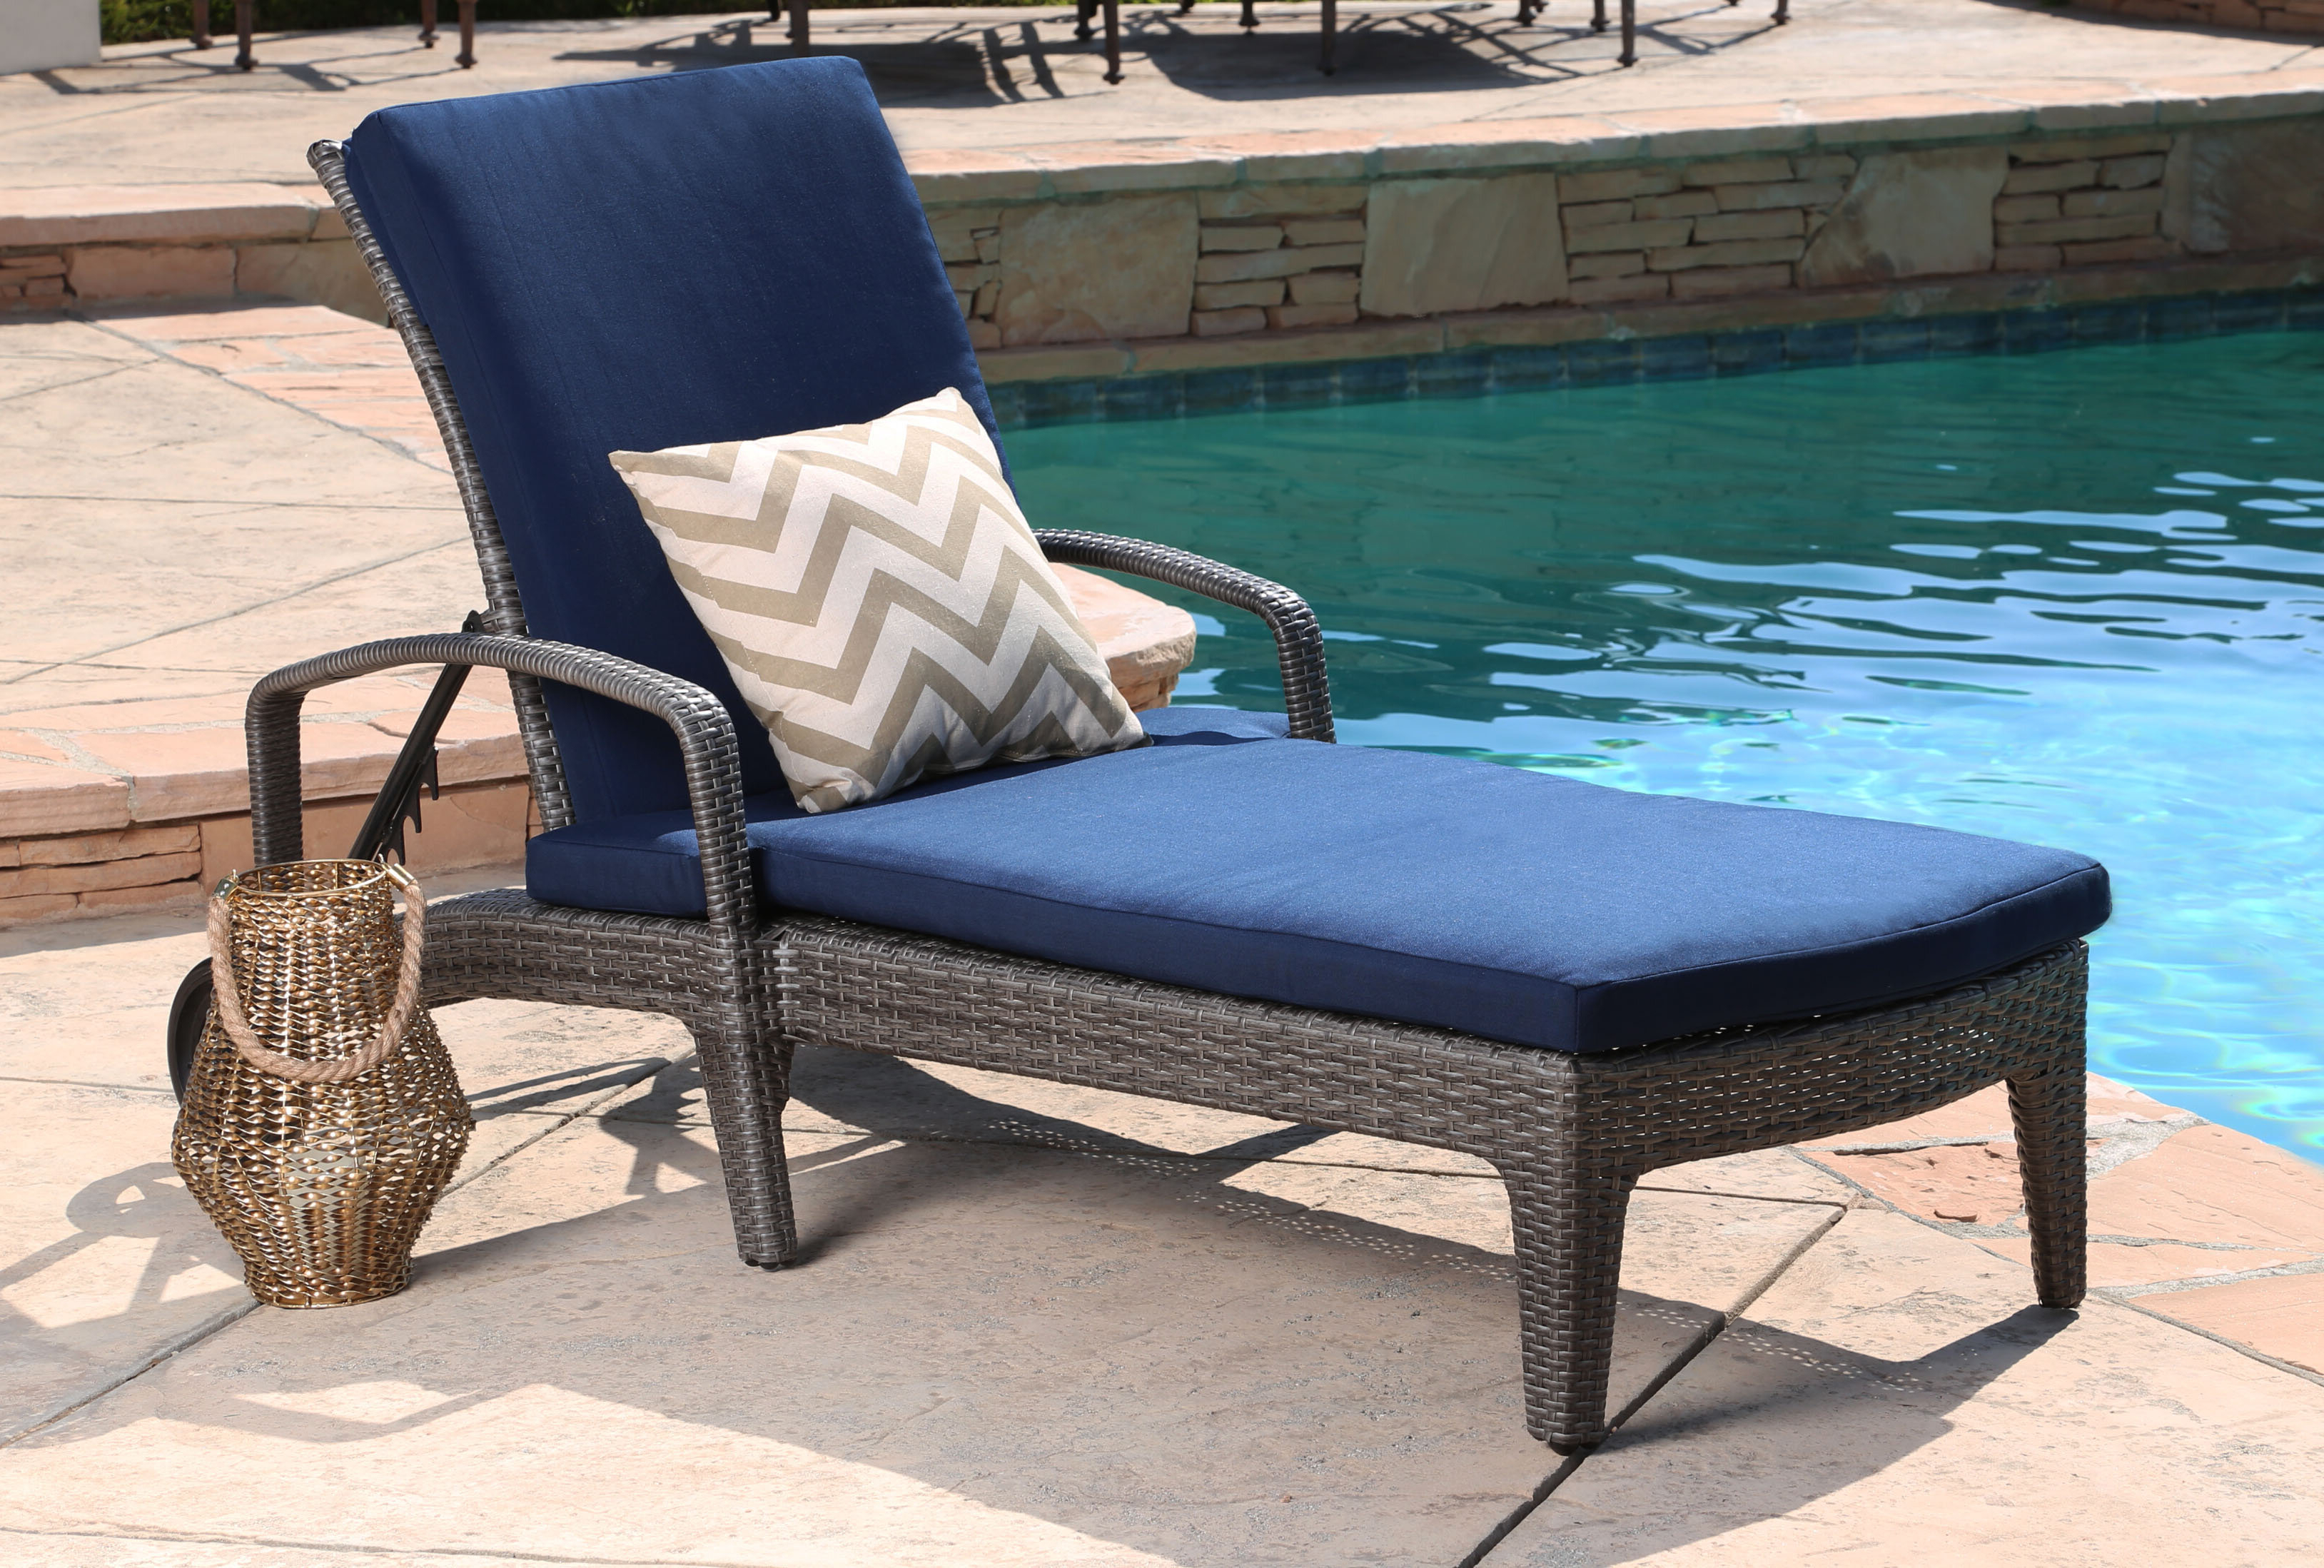 Outdoor Adjustable Reclining Wicker Chaise Lounges With Preferred Ostrowski Outdoor Wicker Adjustable Reclining Chaise Lounge (View 14 of 25)